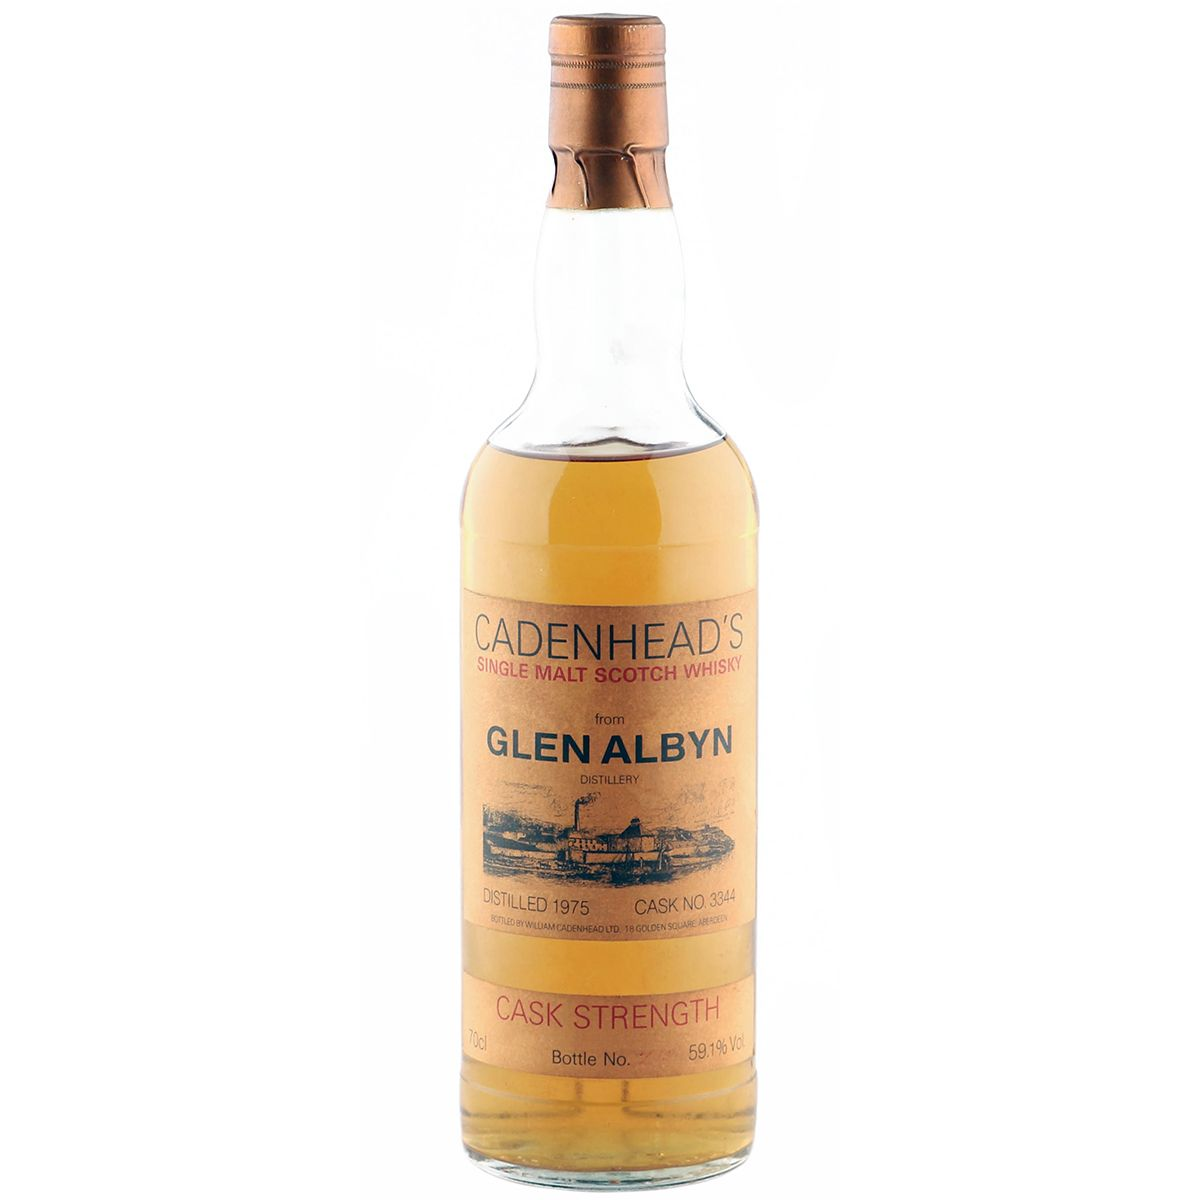 Glen Albyn 1975, Cadenhead's Cask Strength | The Whisky Vault